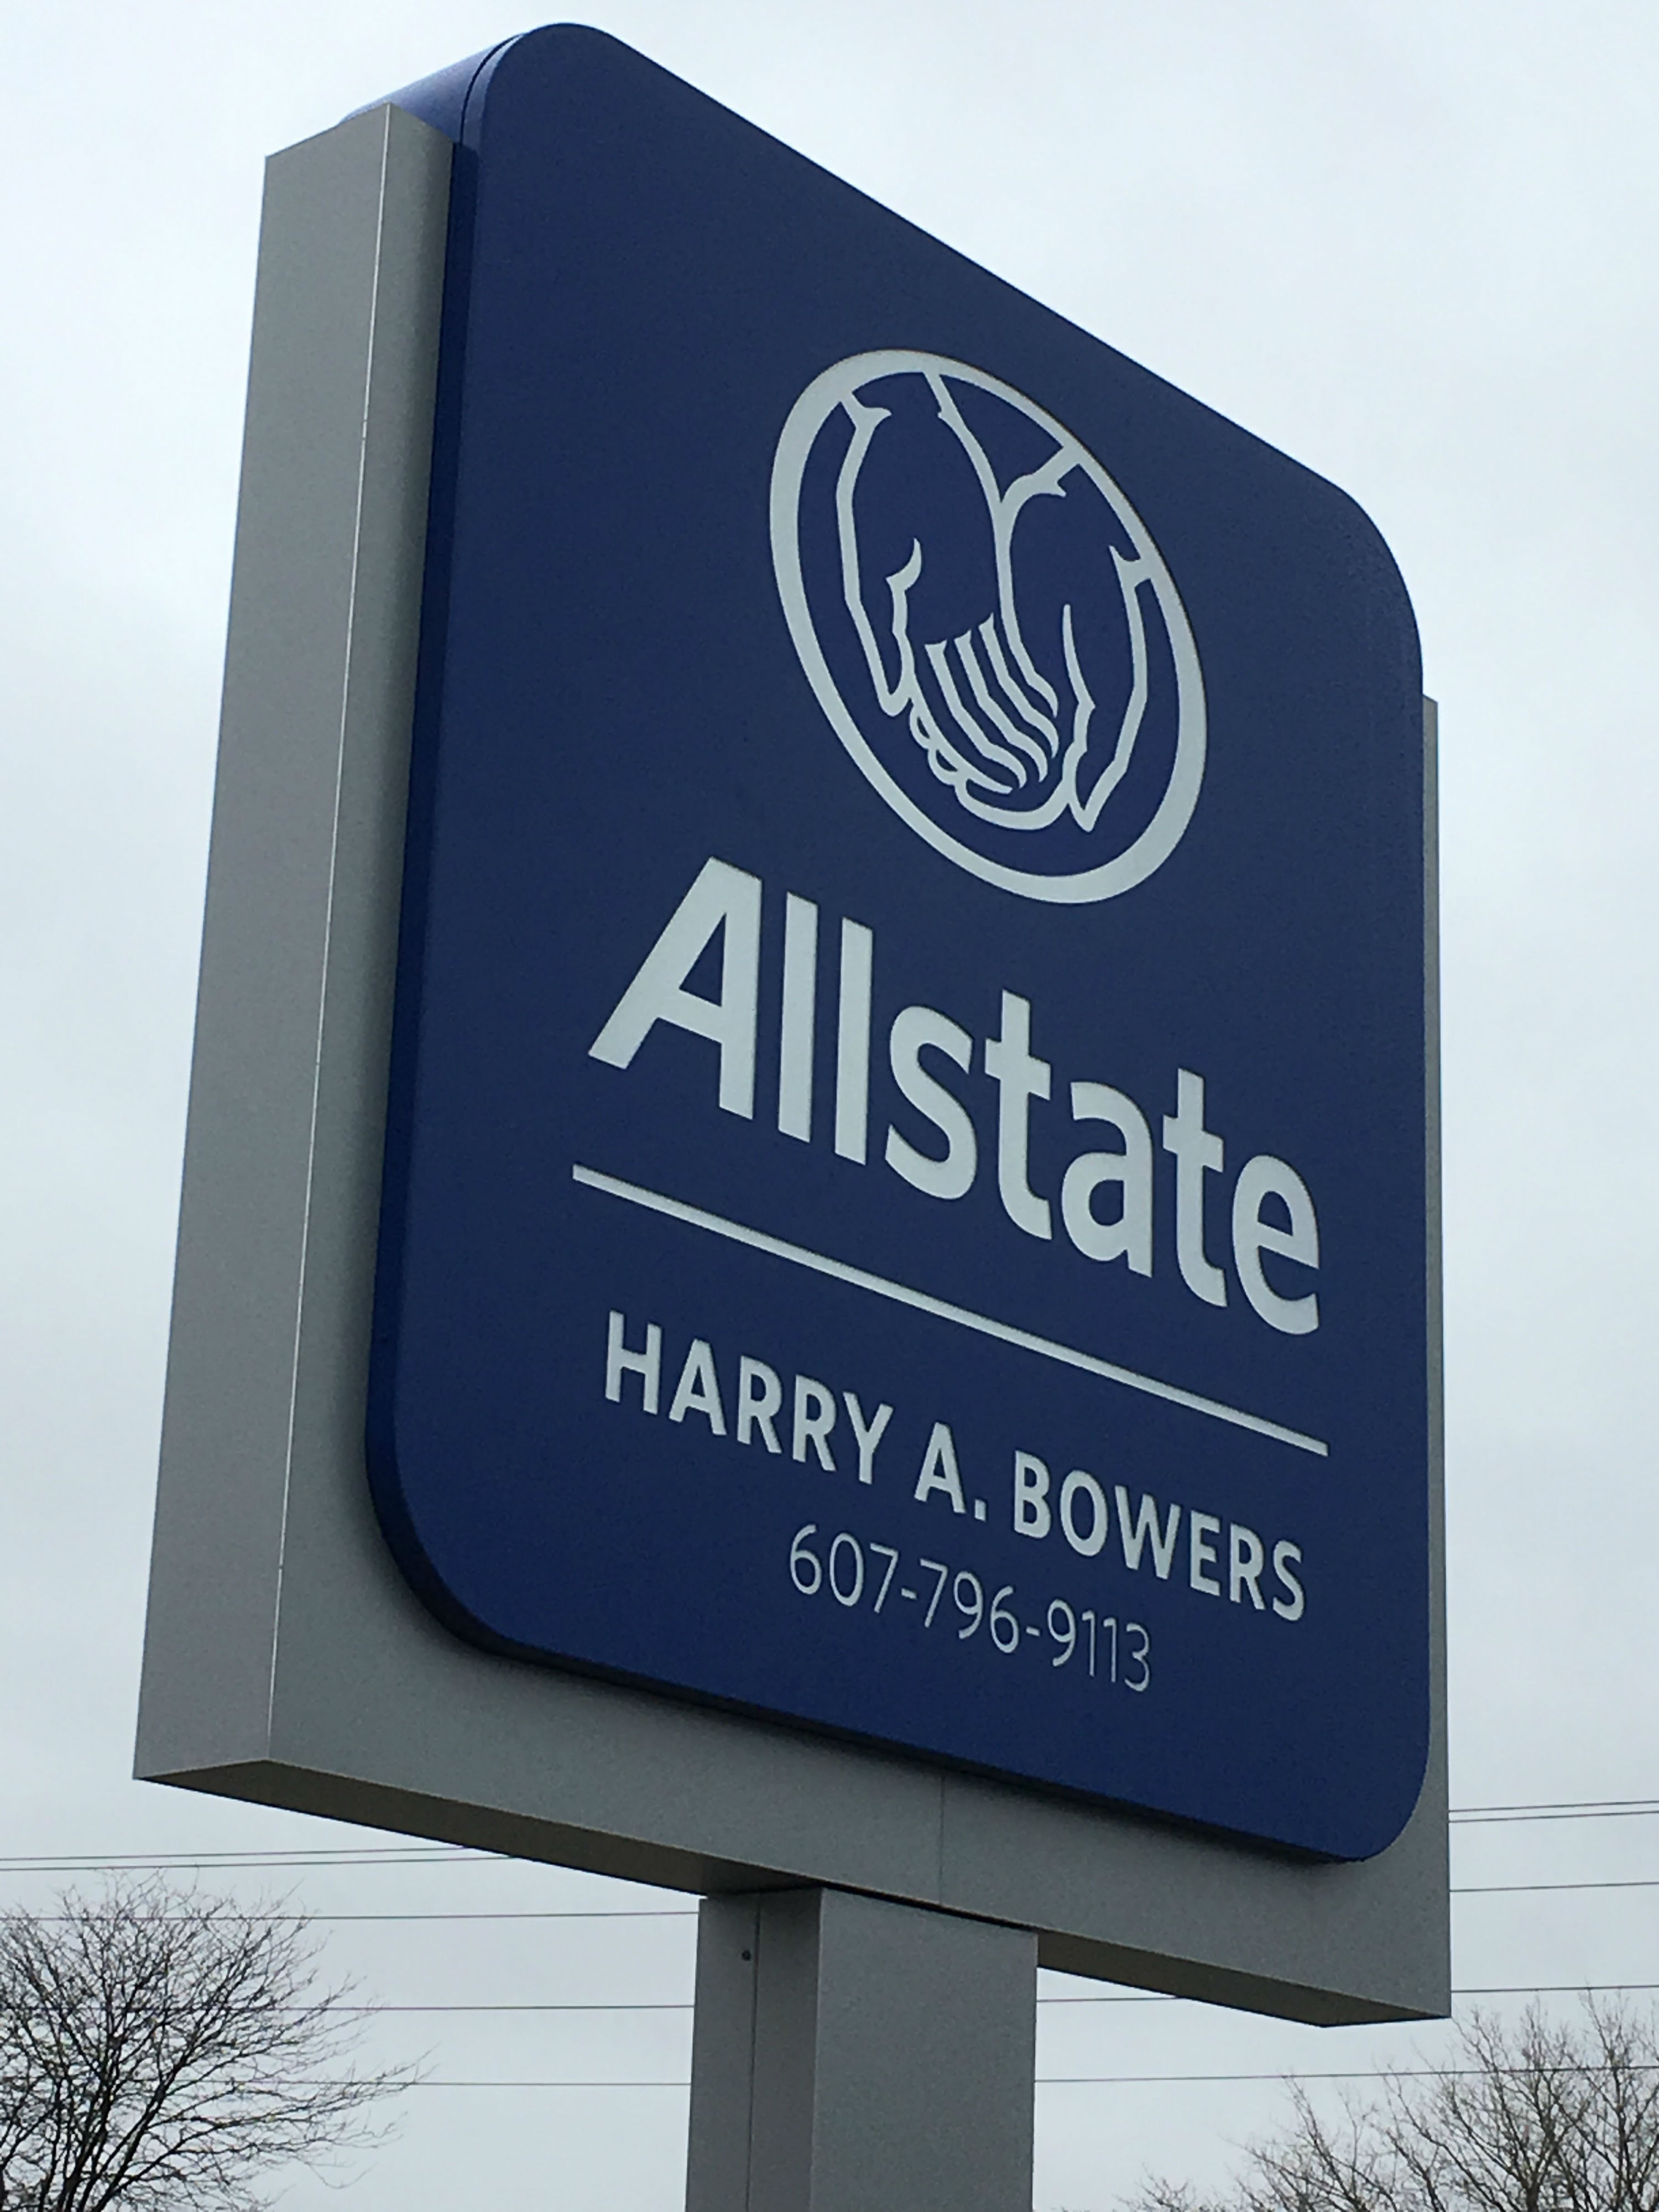 Allstate Insurance Agent: Harry Bowers image 2